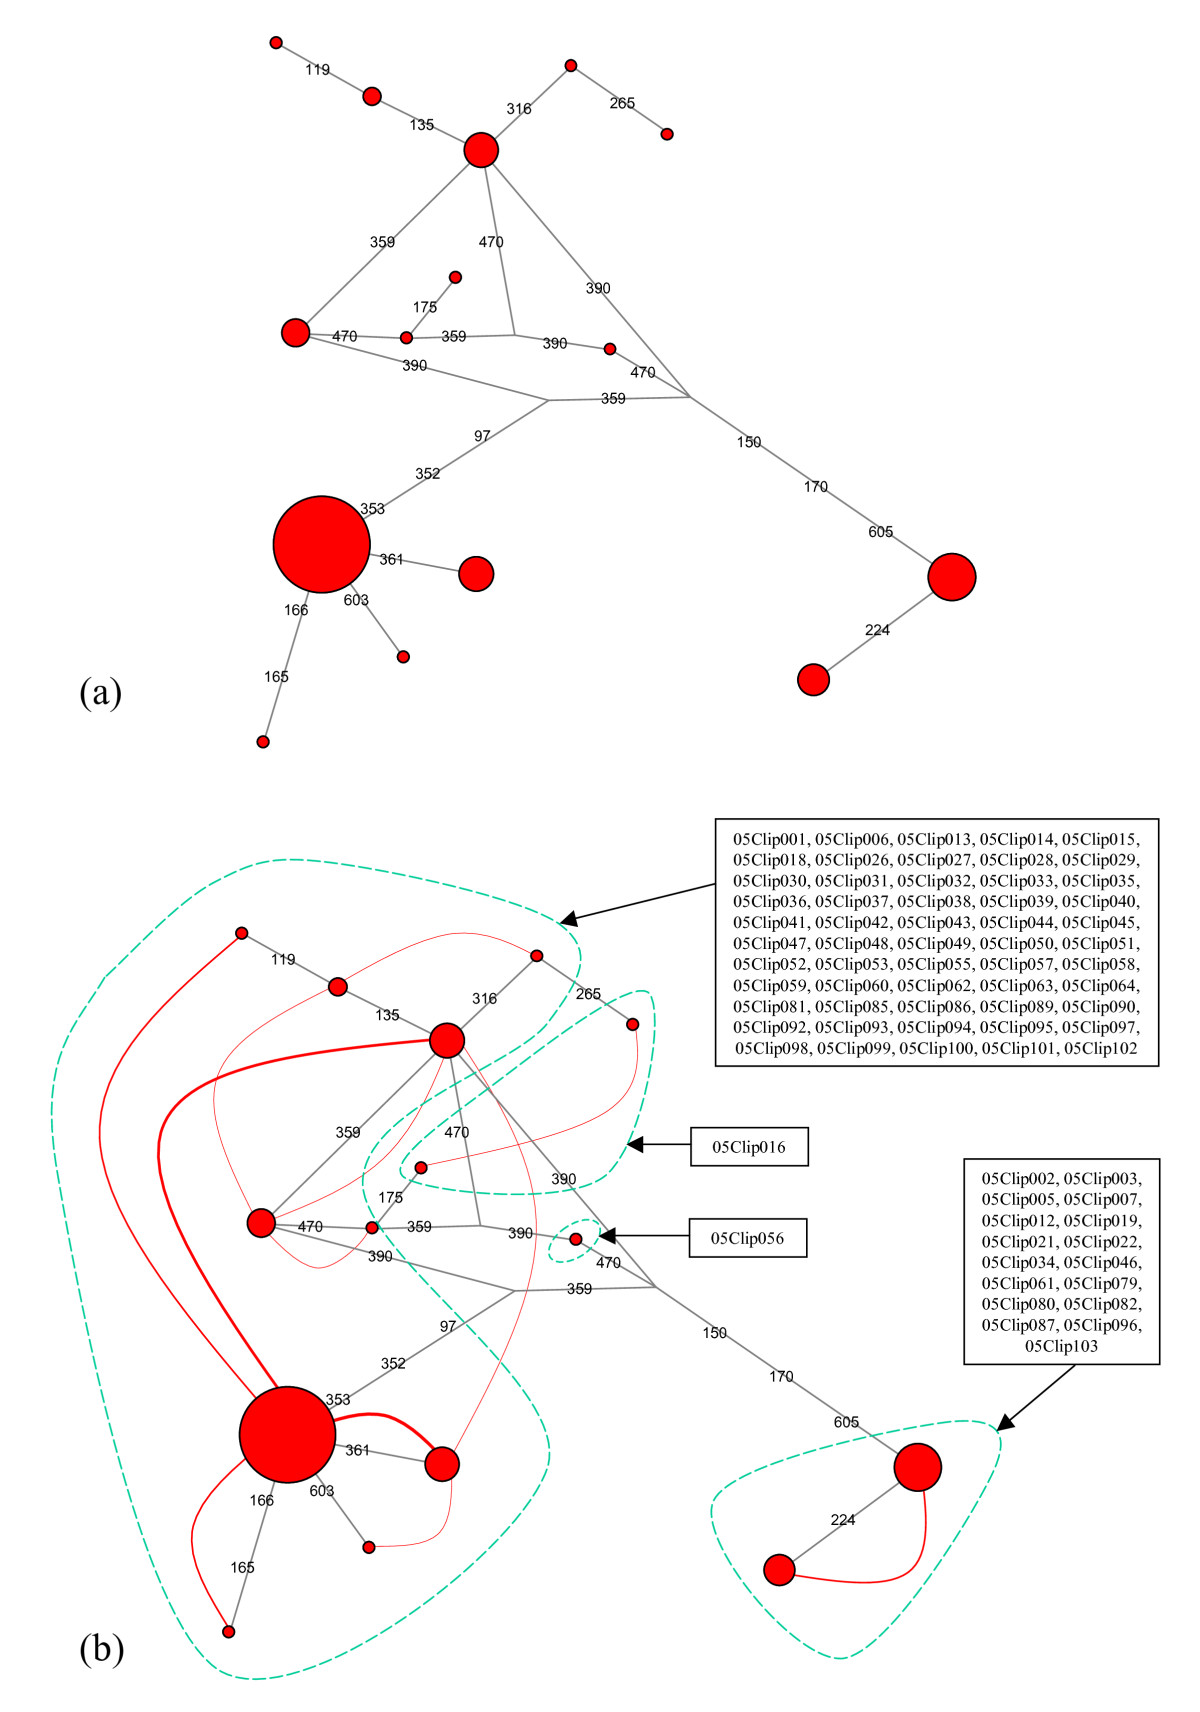 http://static-content.springer.com/image/art%3A10.1186%2F1471-2148-10-372/MediaObjects/12862_2010_Article_1587_Fig3_HTML.jpg